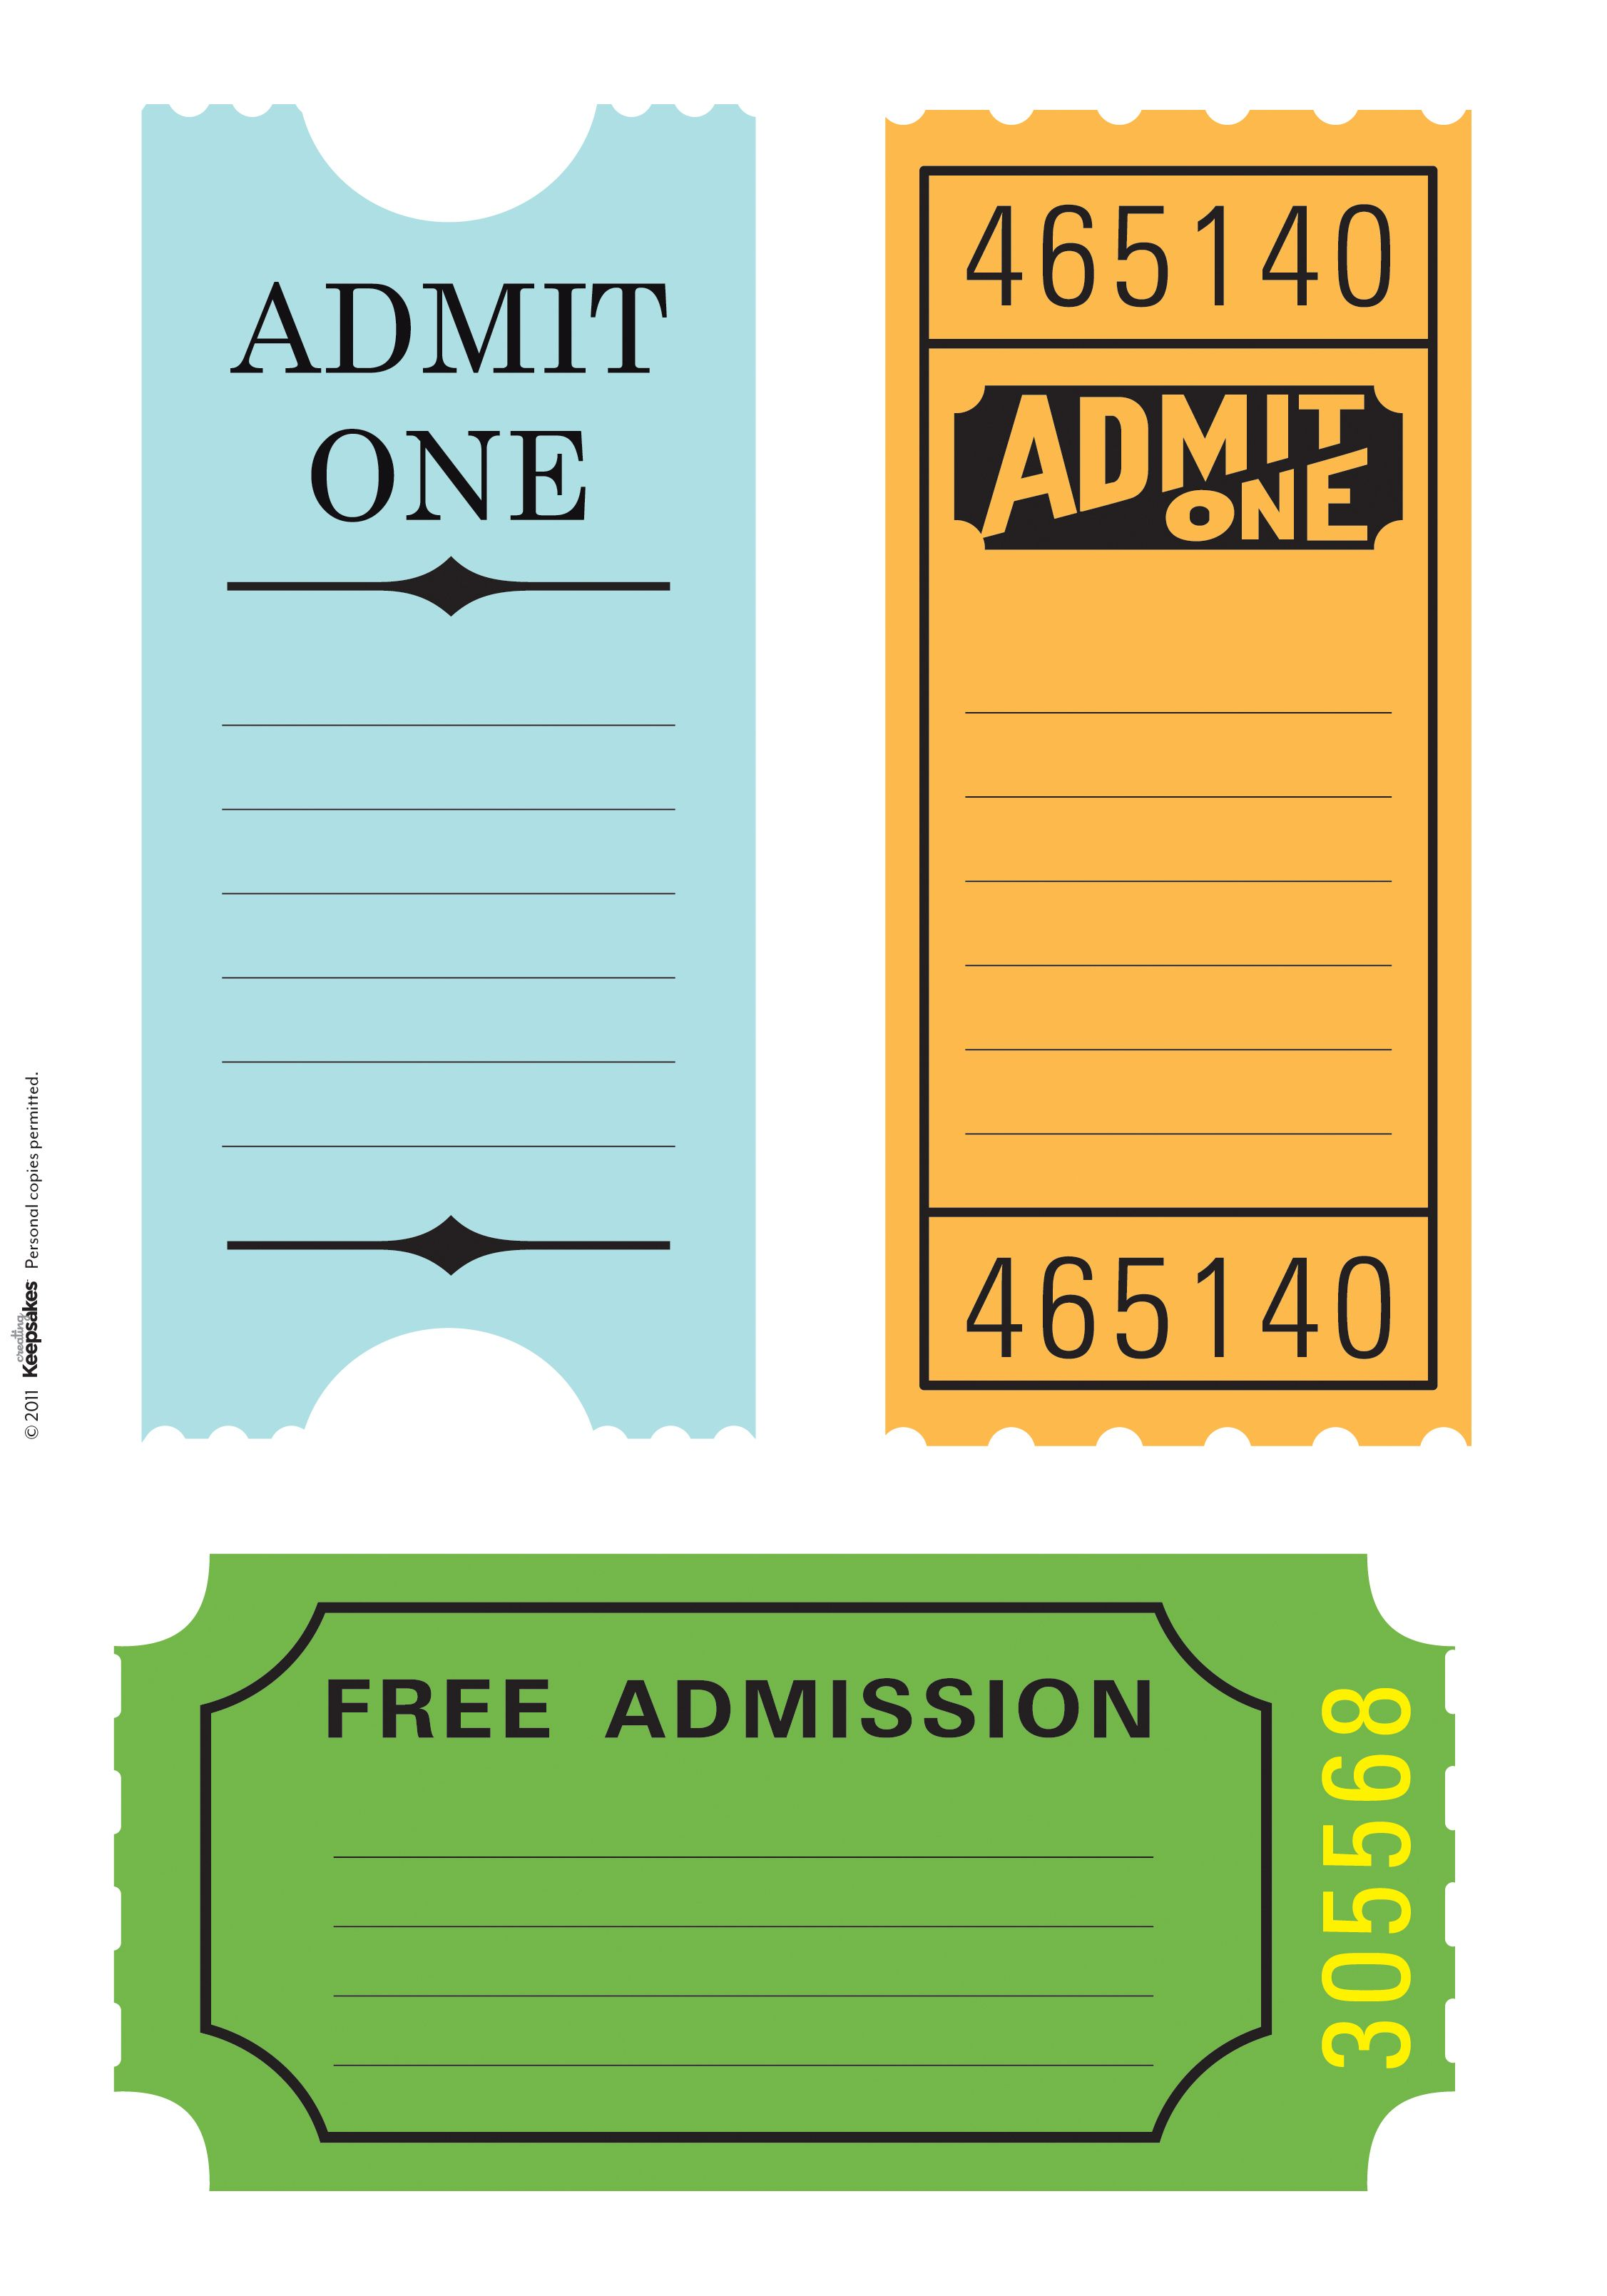 Free Travel Tickets Journaling Spots Http Www Creatingkeepsakes Com Articles Ticket Shaped Scrapboo Creating Keepsakes Scrapbook Magazines Scrapbook Journal Free printable ticket stub template